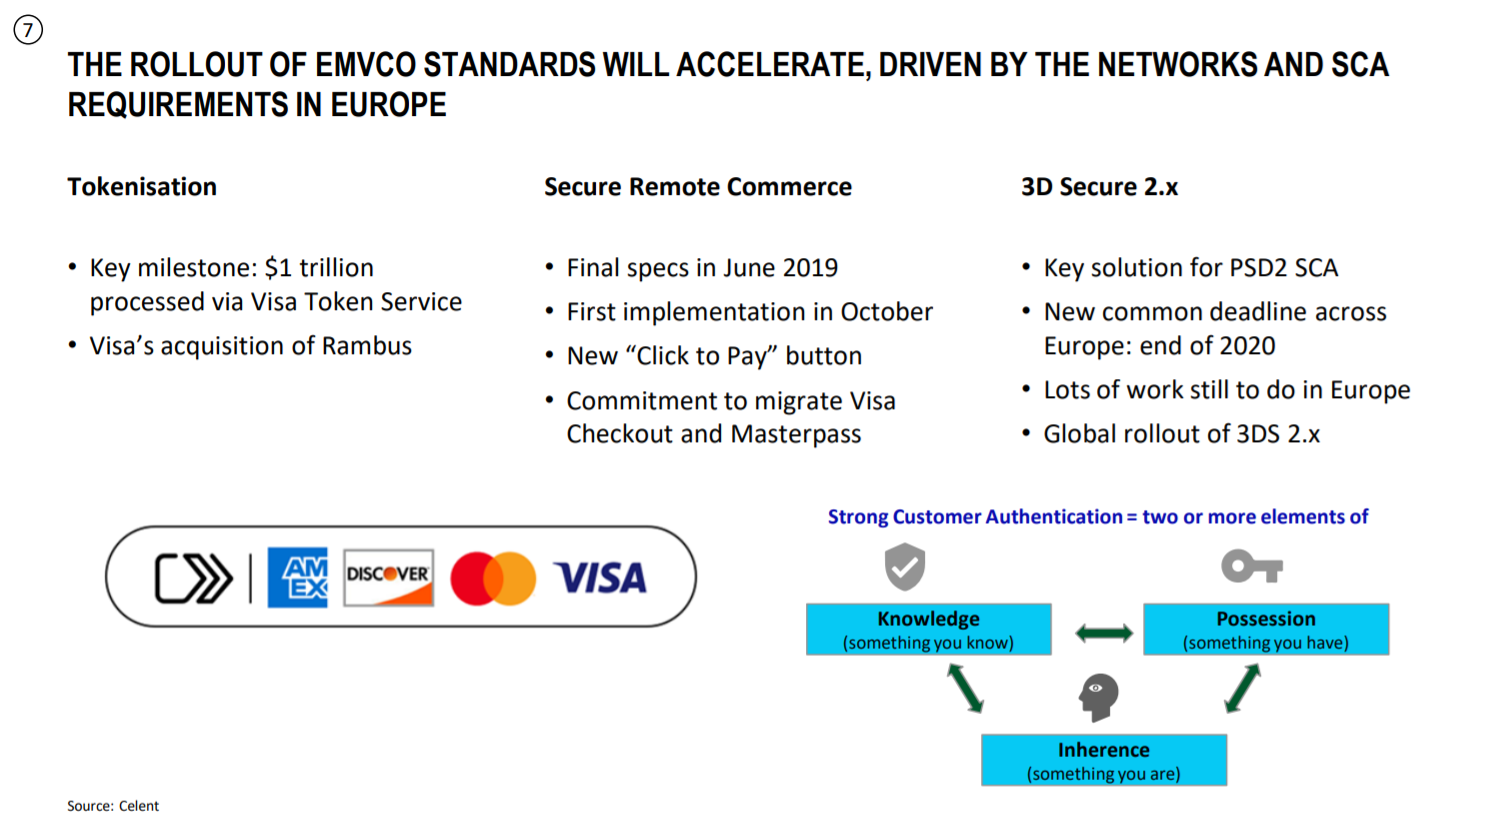 Rollout of EMVCO Standards by The Netwroks and SCA Requirements in Europe